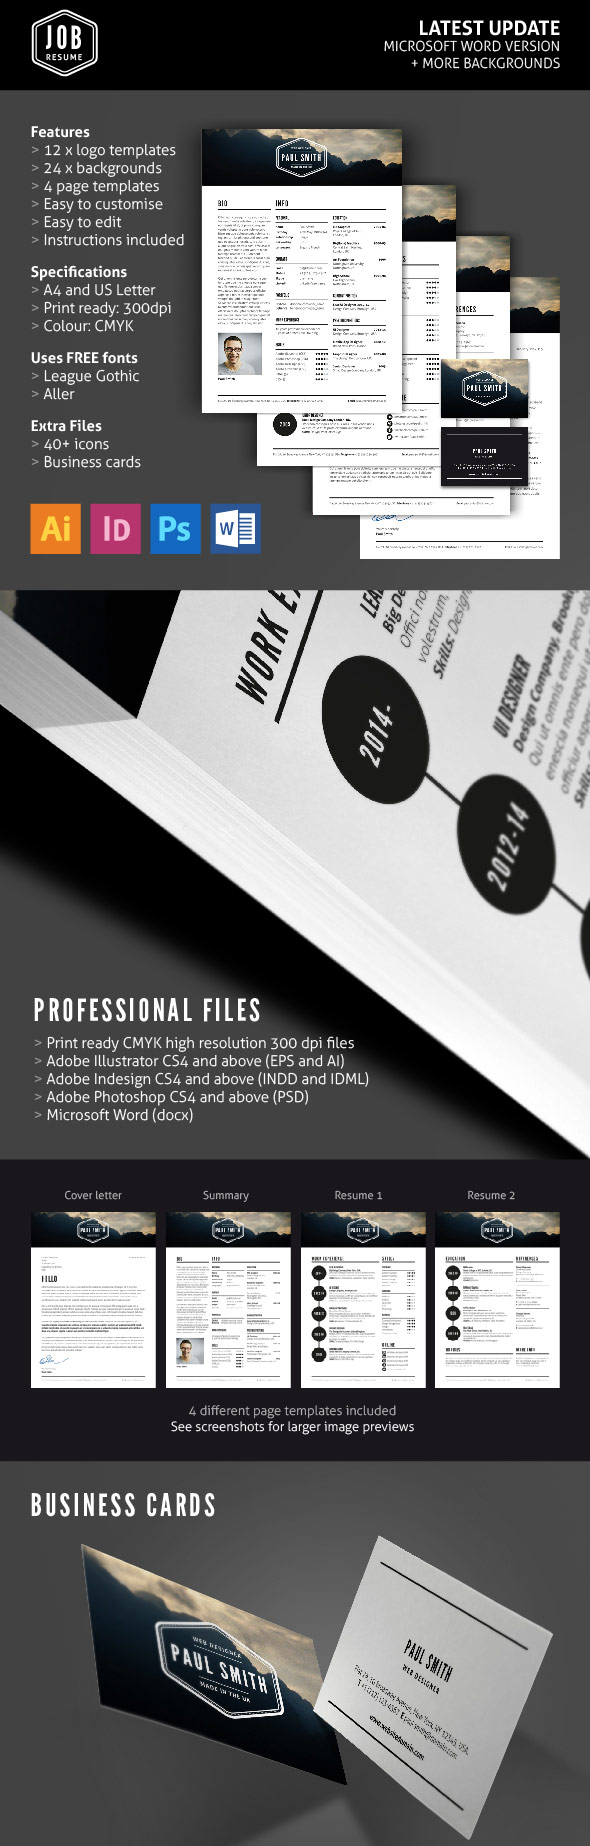 Job Resume Template Set With Logos  Business Cards